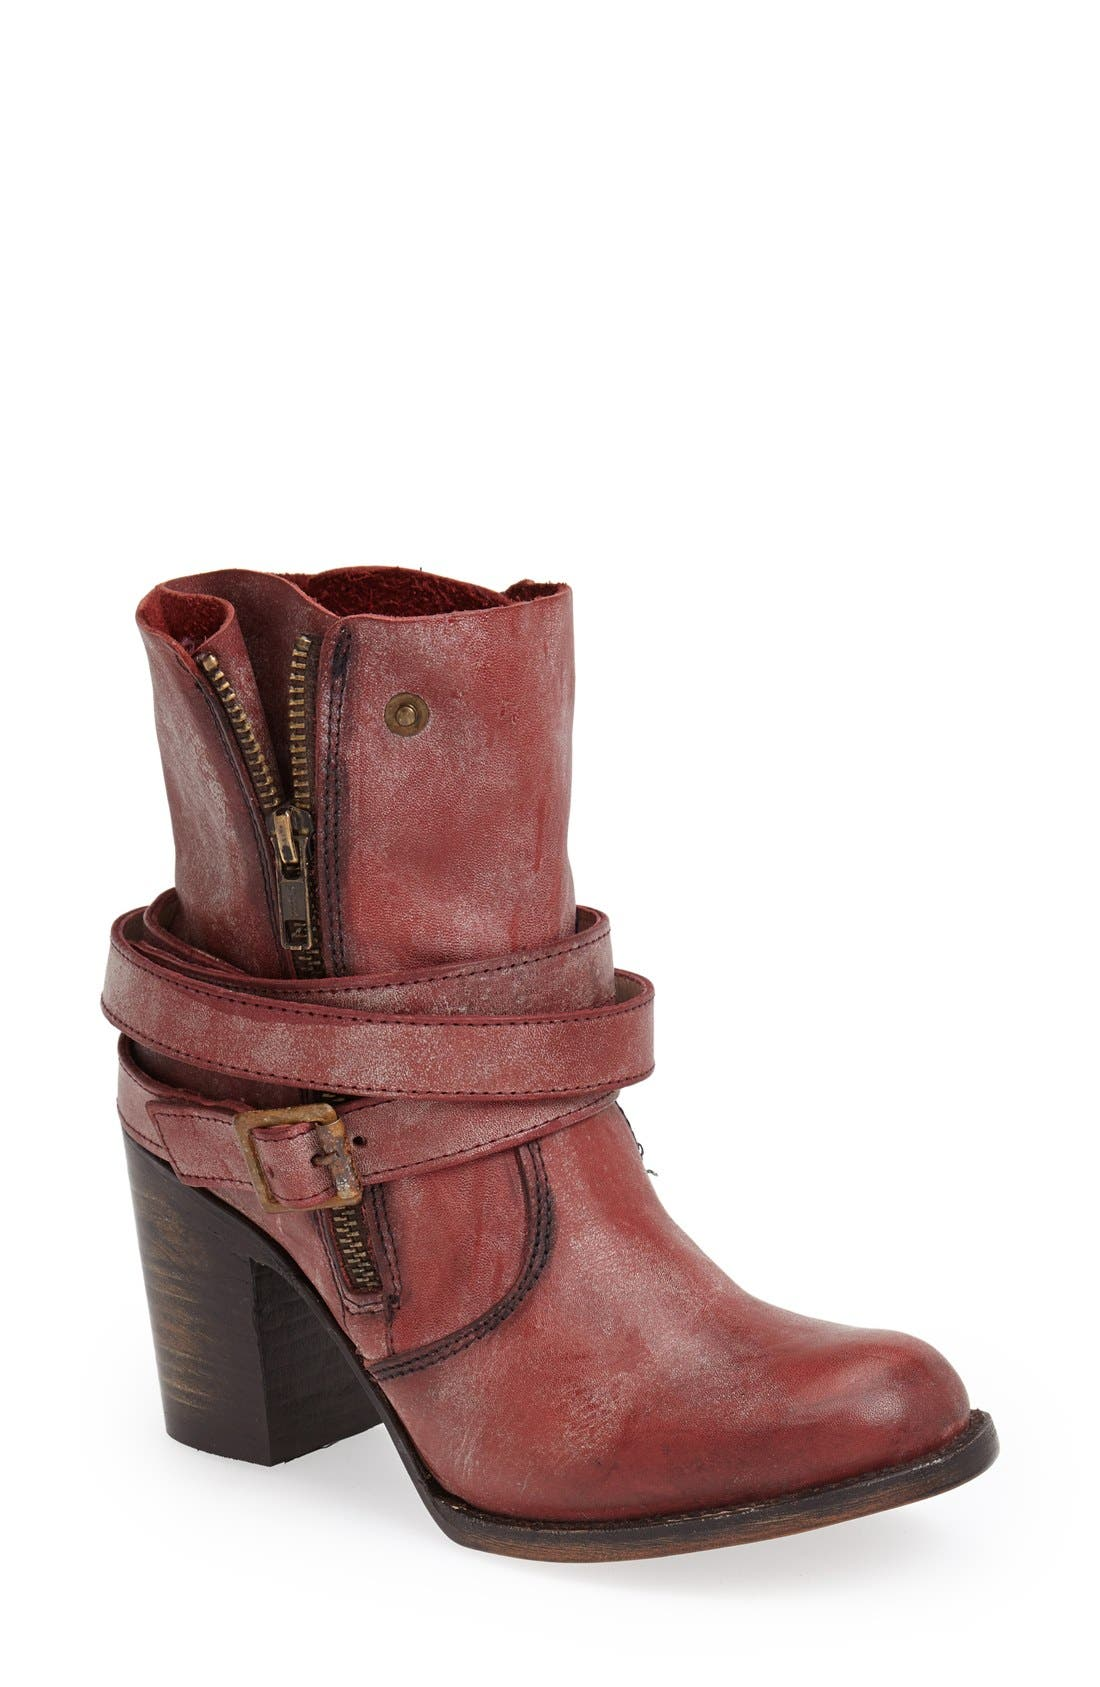 'Bama' Leather Ankle Bootie,                             Main thumbnail 1, color,                             600